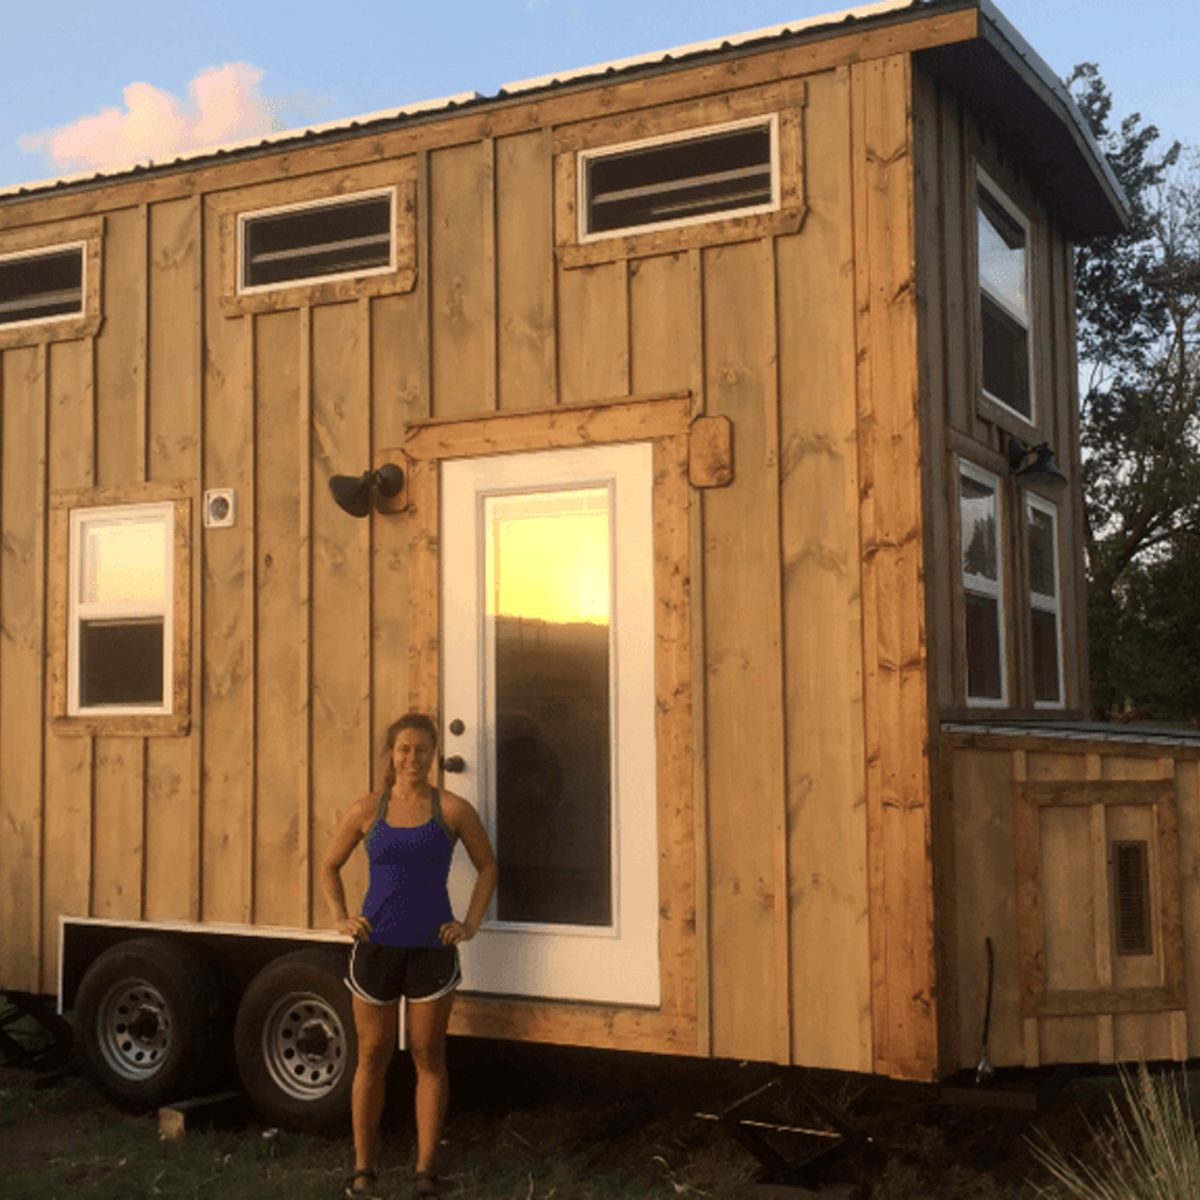 Cozy, Tiny Cabin - Tiny House for Sale in Colorado Springs, Colorado - Tiny  House Listings